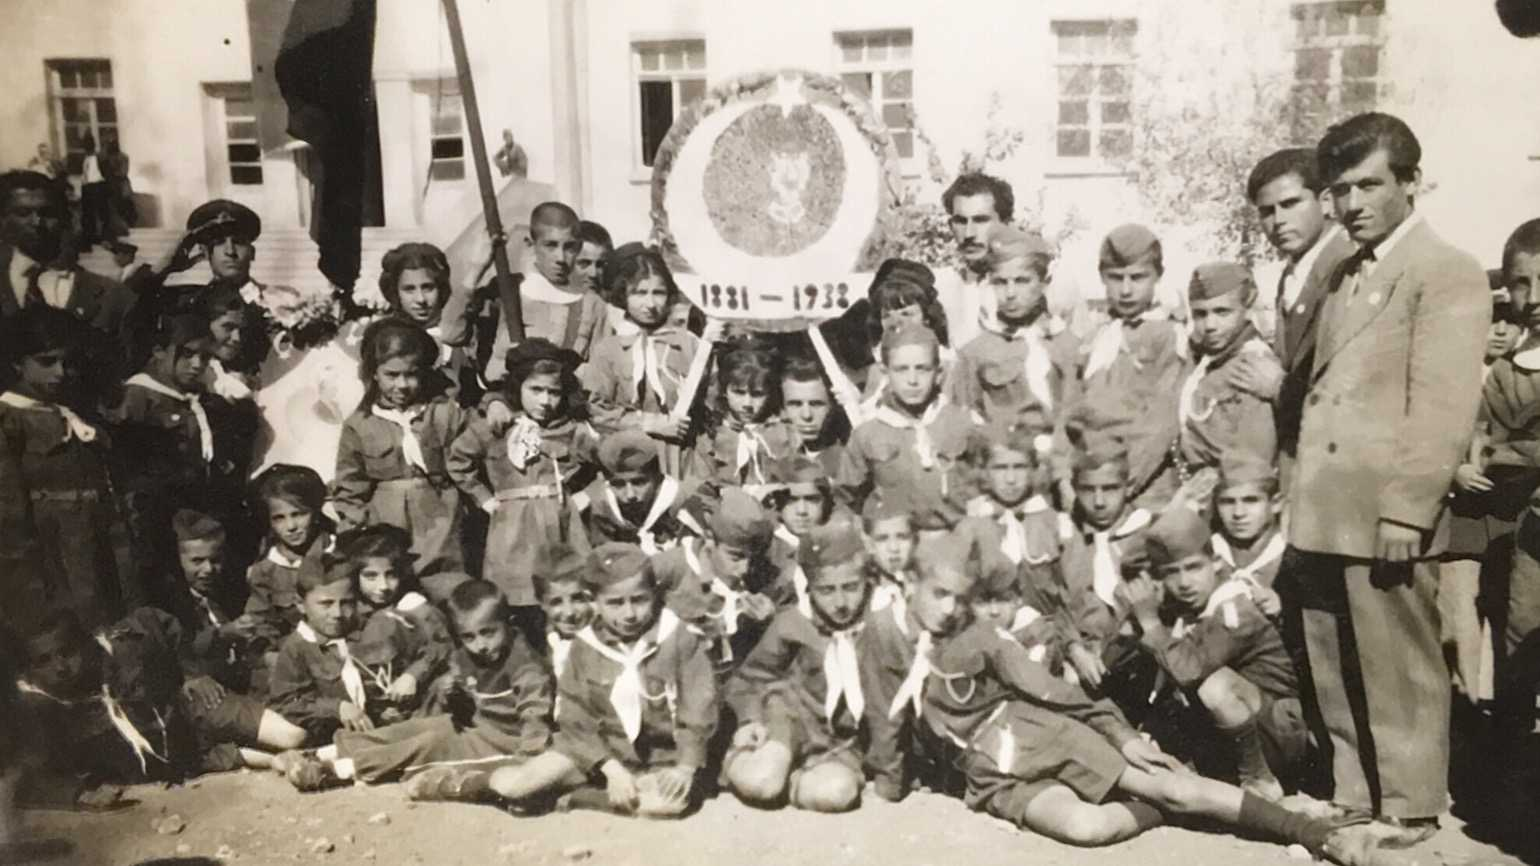 Finding a miracle in an old class photo.